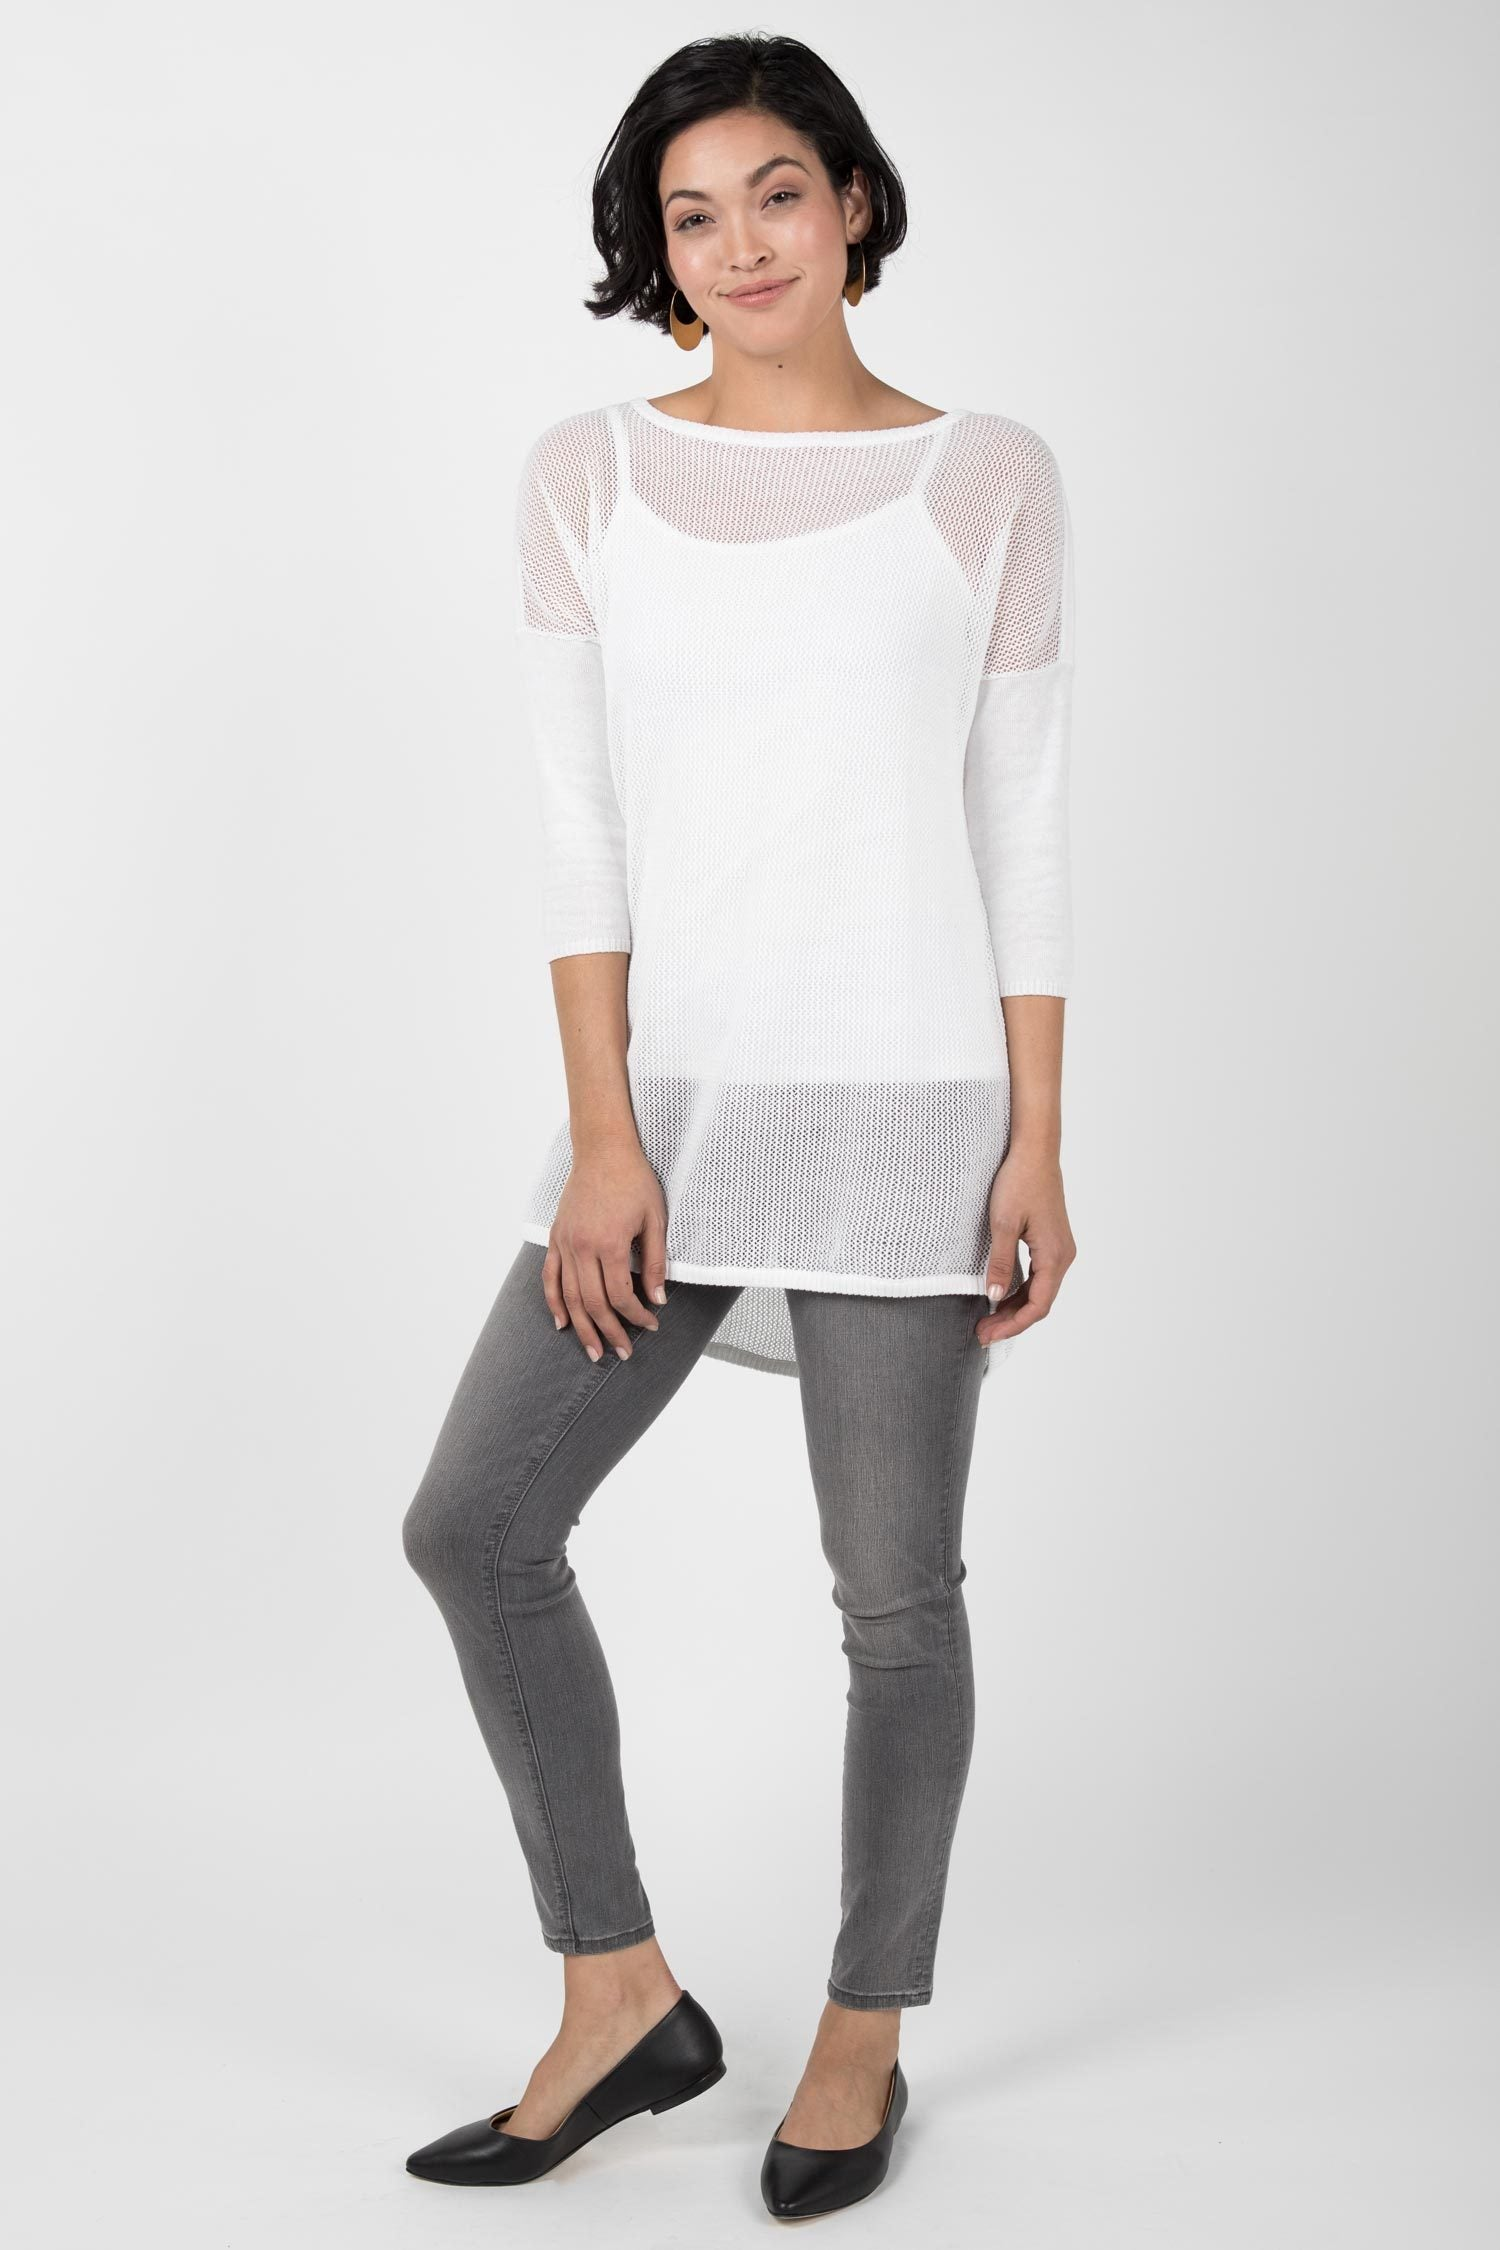 Womens Knit Mesh Top | Lightweight Organic Cotton Sweater | White